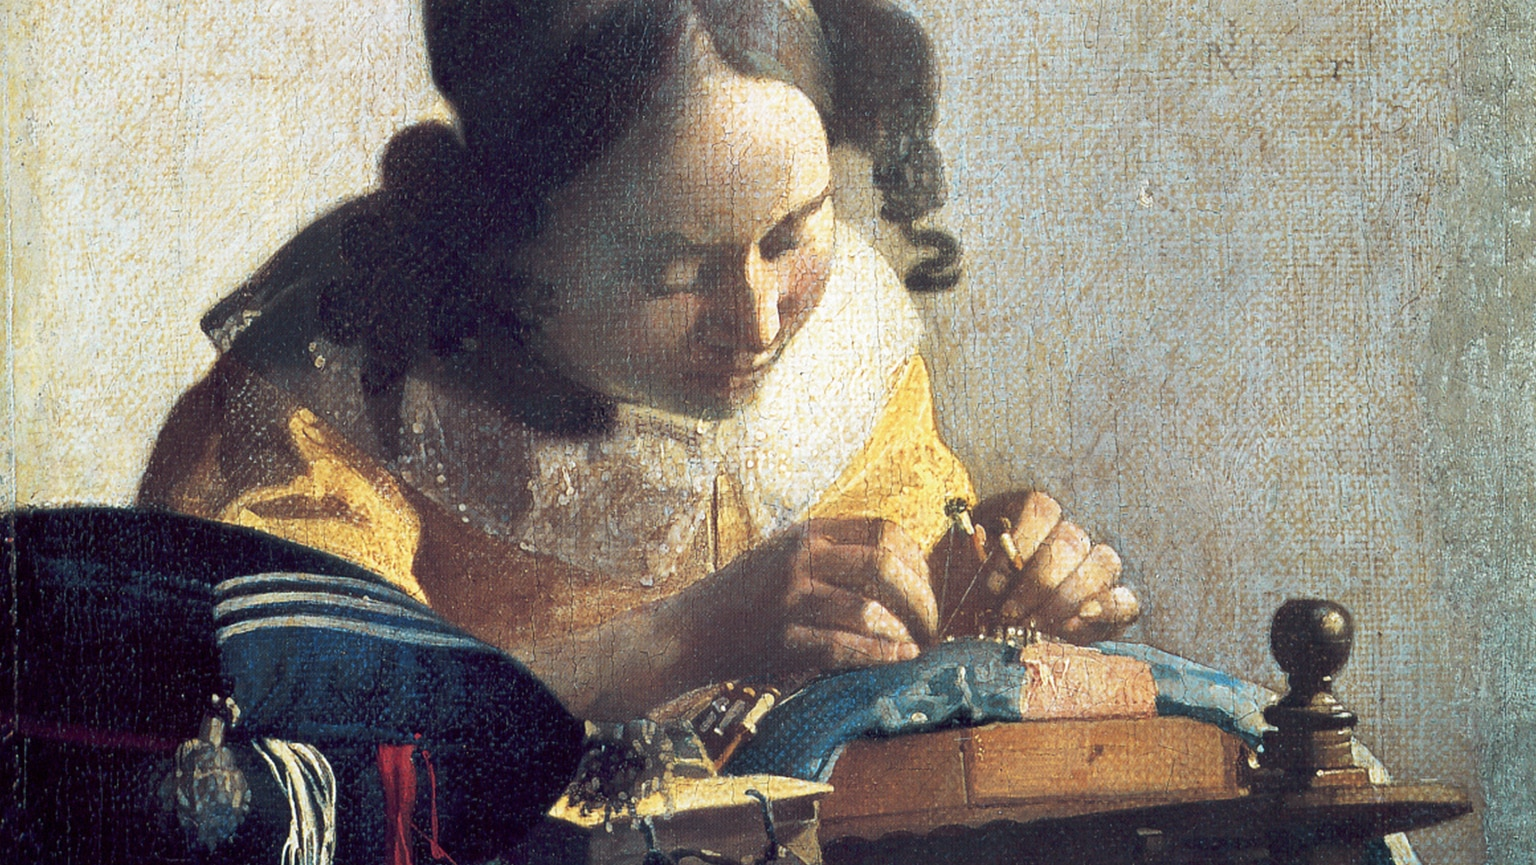 rembrandt  vermeer  and dutch painting